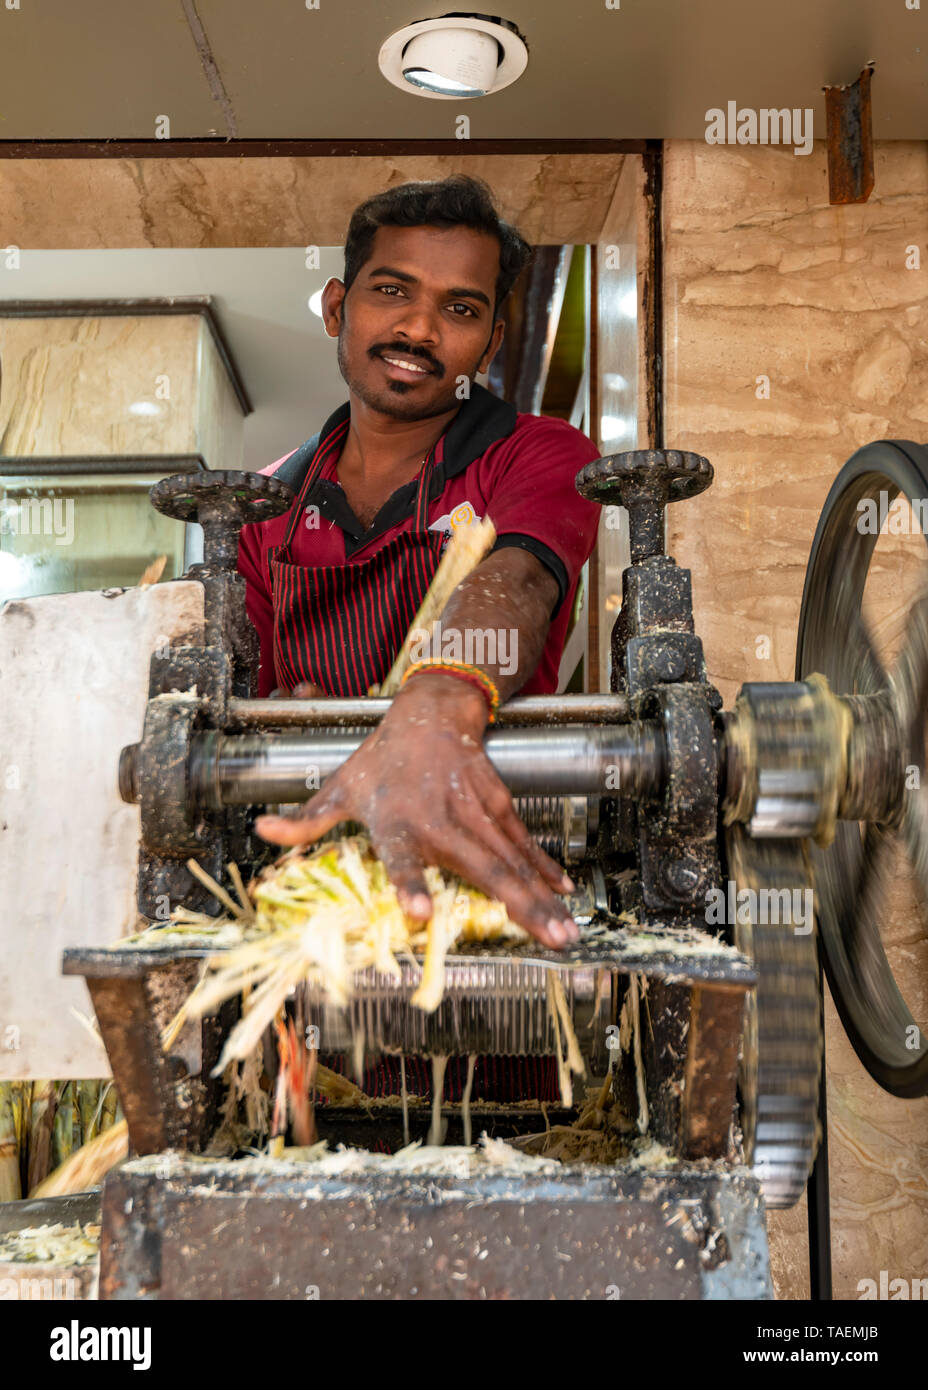 vertical-portrait-of-a-man-using-a-mangle-to-extract-sugarcane-juice-in-india-TAEMJB.jpg